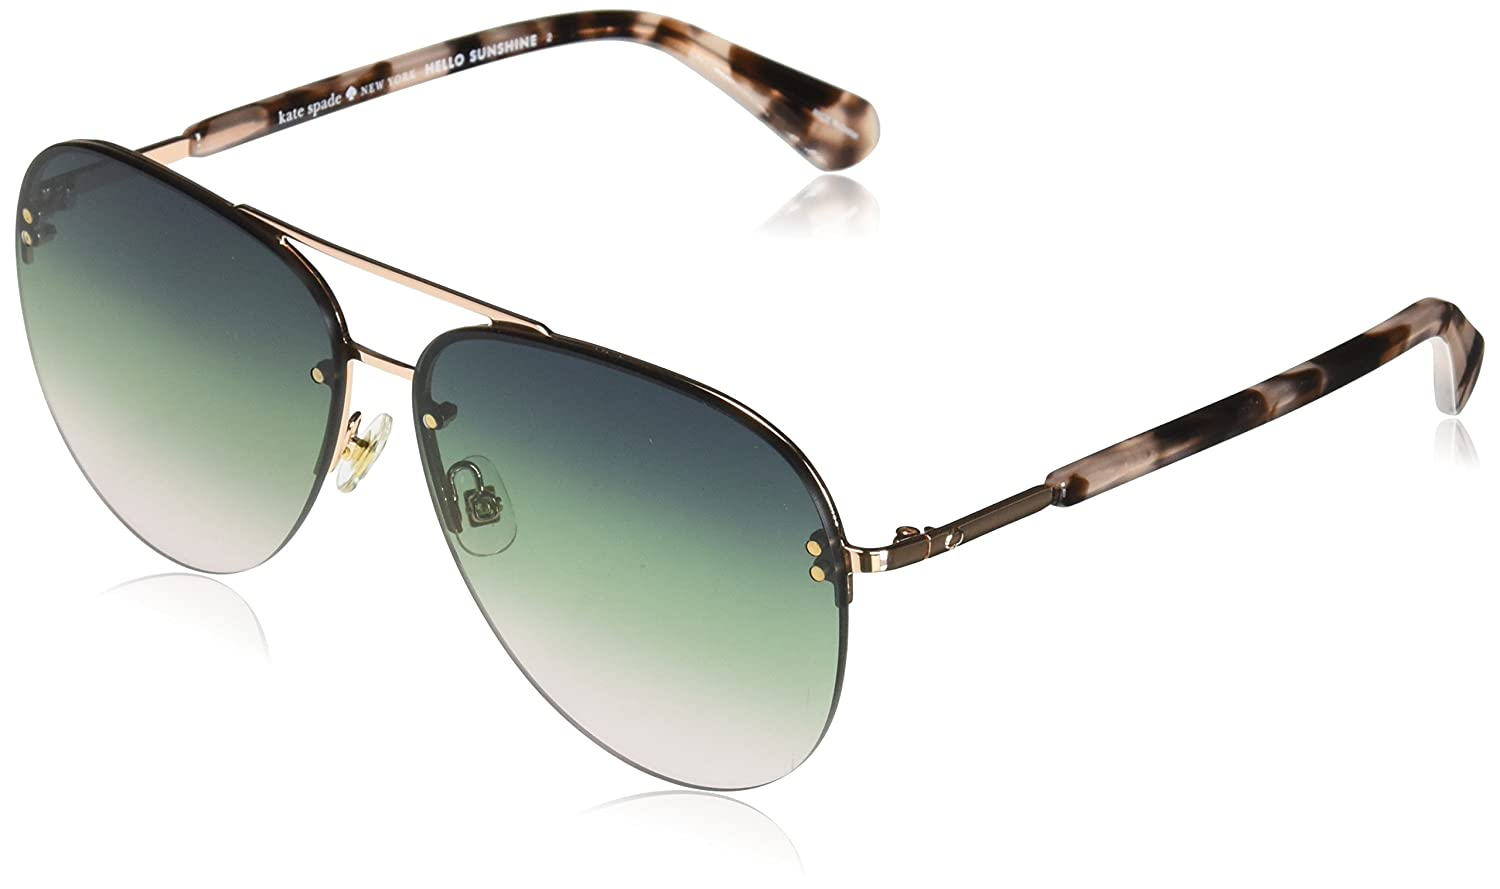 061d8a6f6 Amazon.com: Kate Spade Women's Jakayla/s Aviator Sunglasses, Blue havana,  62 mm: Clothing